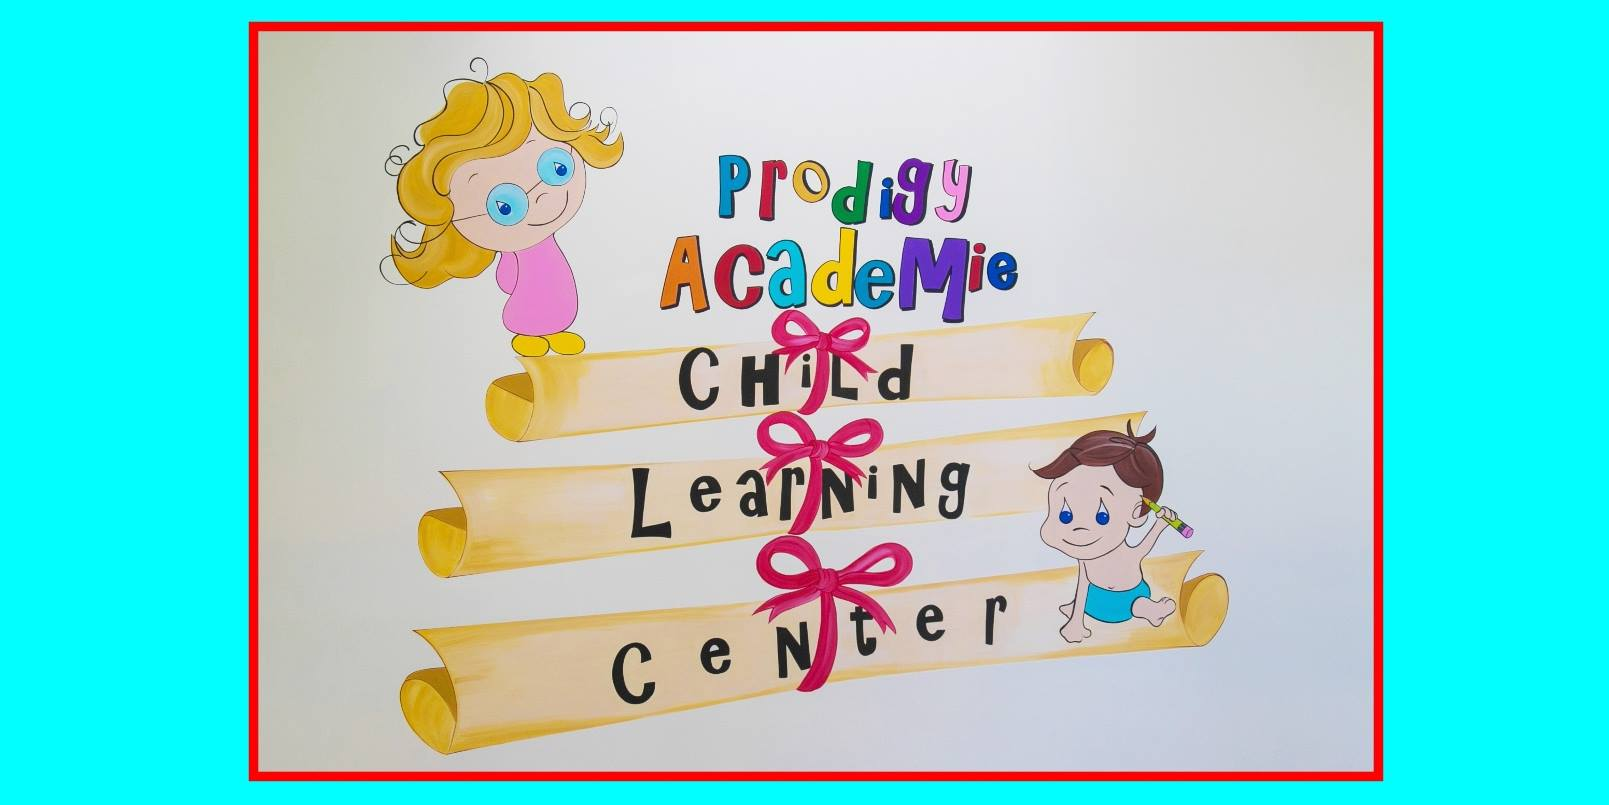 Prodigy Academie Child Learning Center